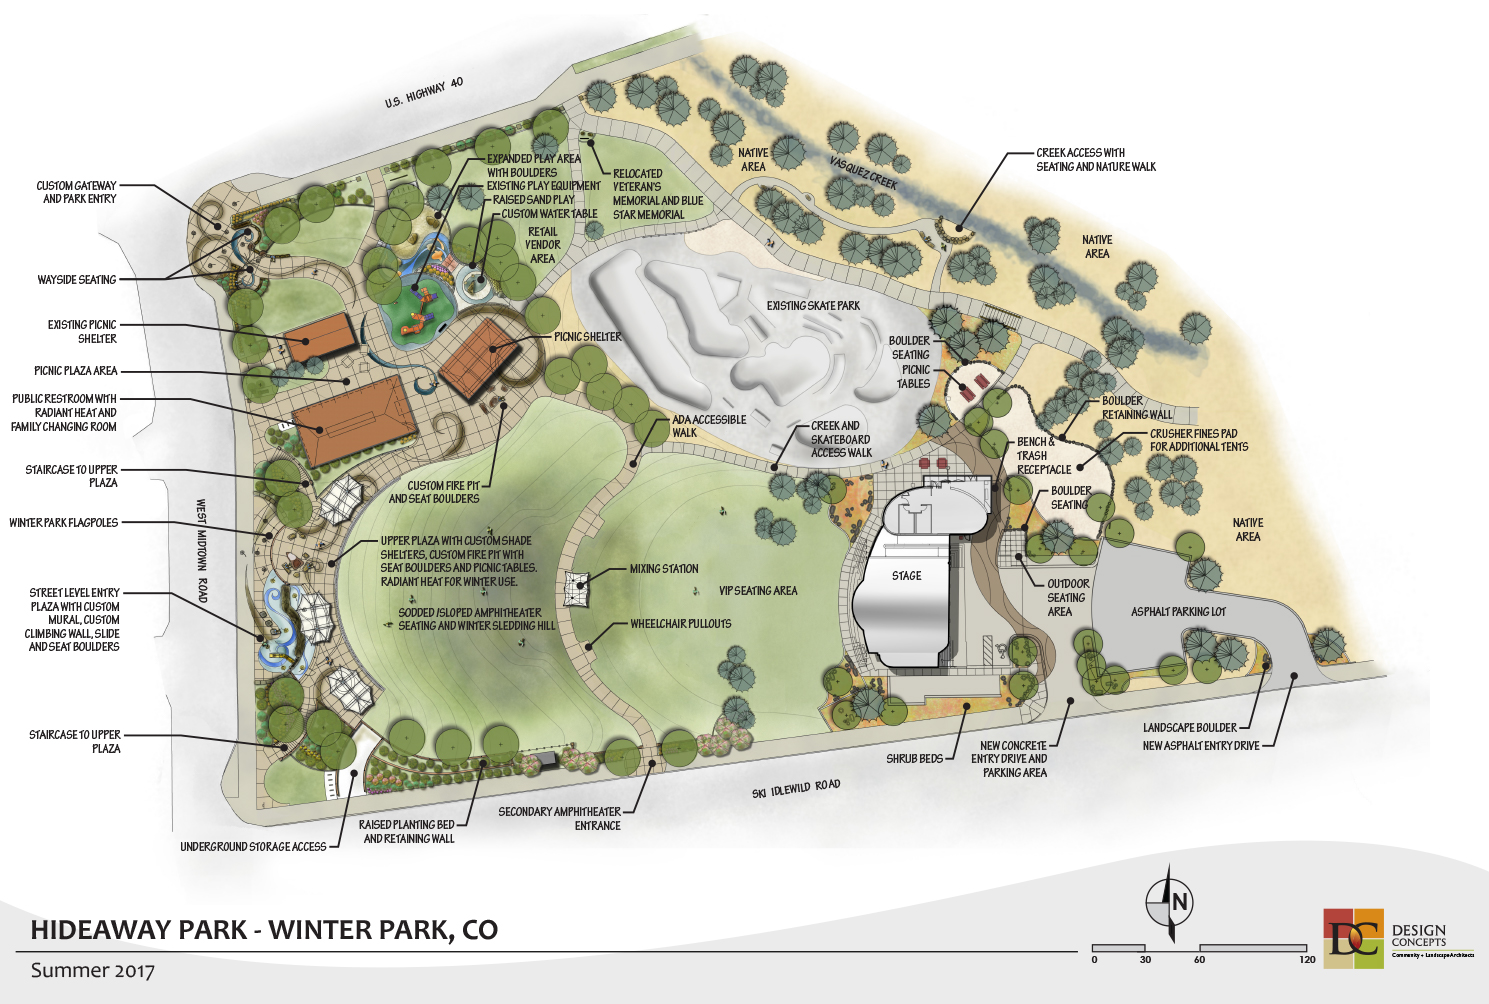 The full site plan showing the playground, amphitheater concert venue, restroom, climbing wall, gathering areas and custom art gateways.